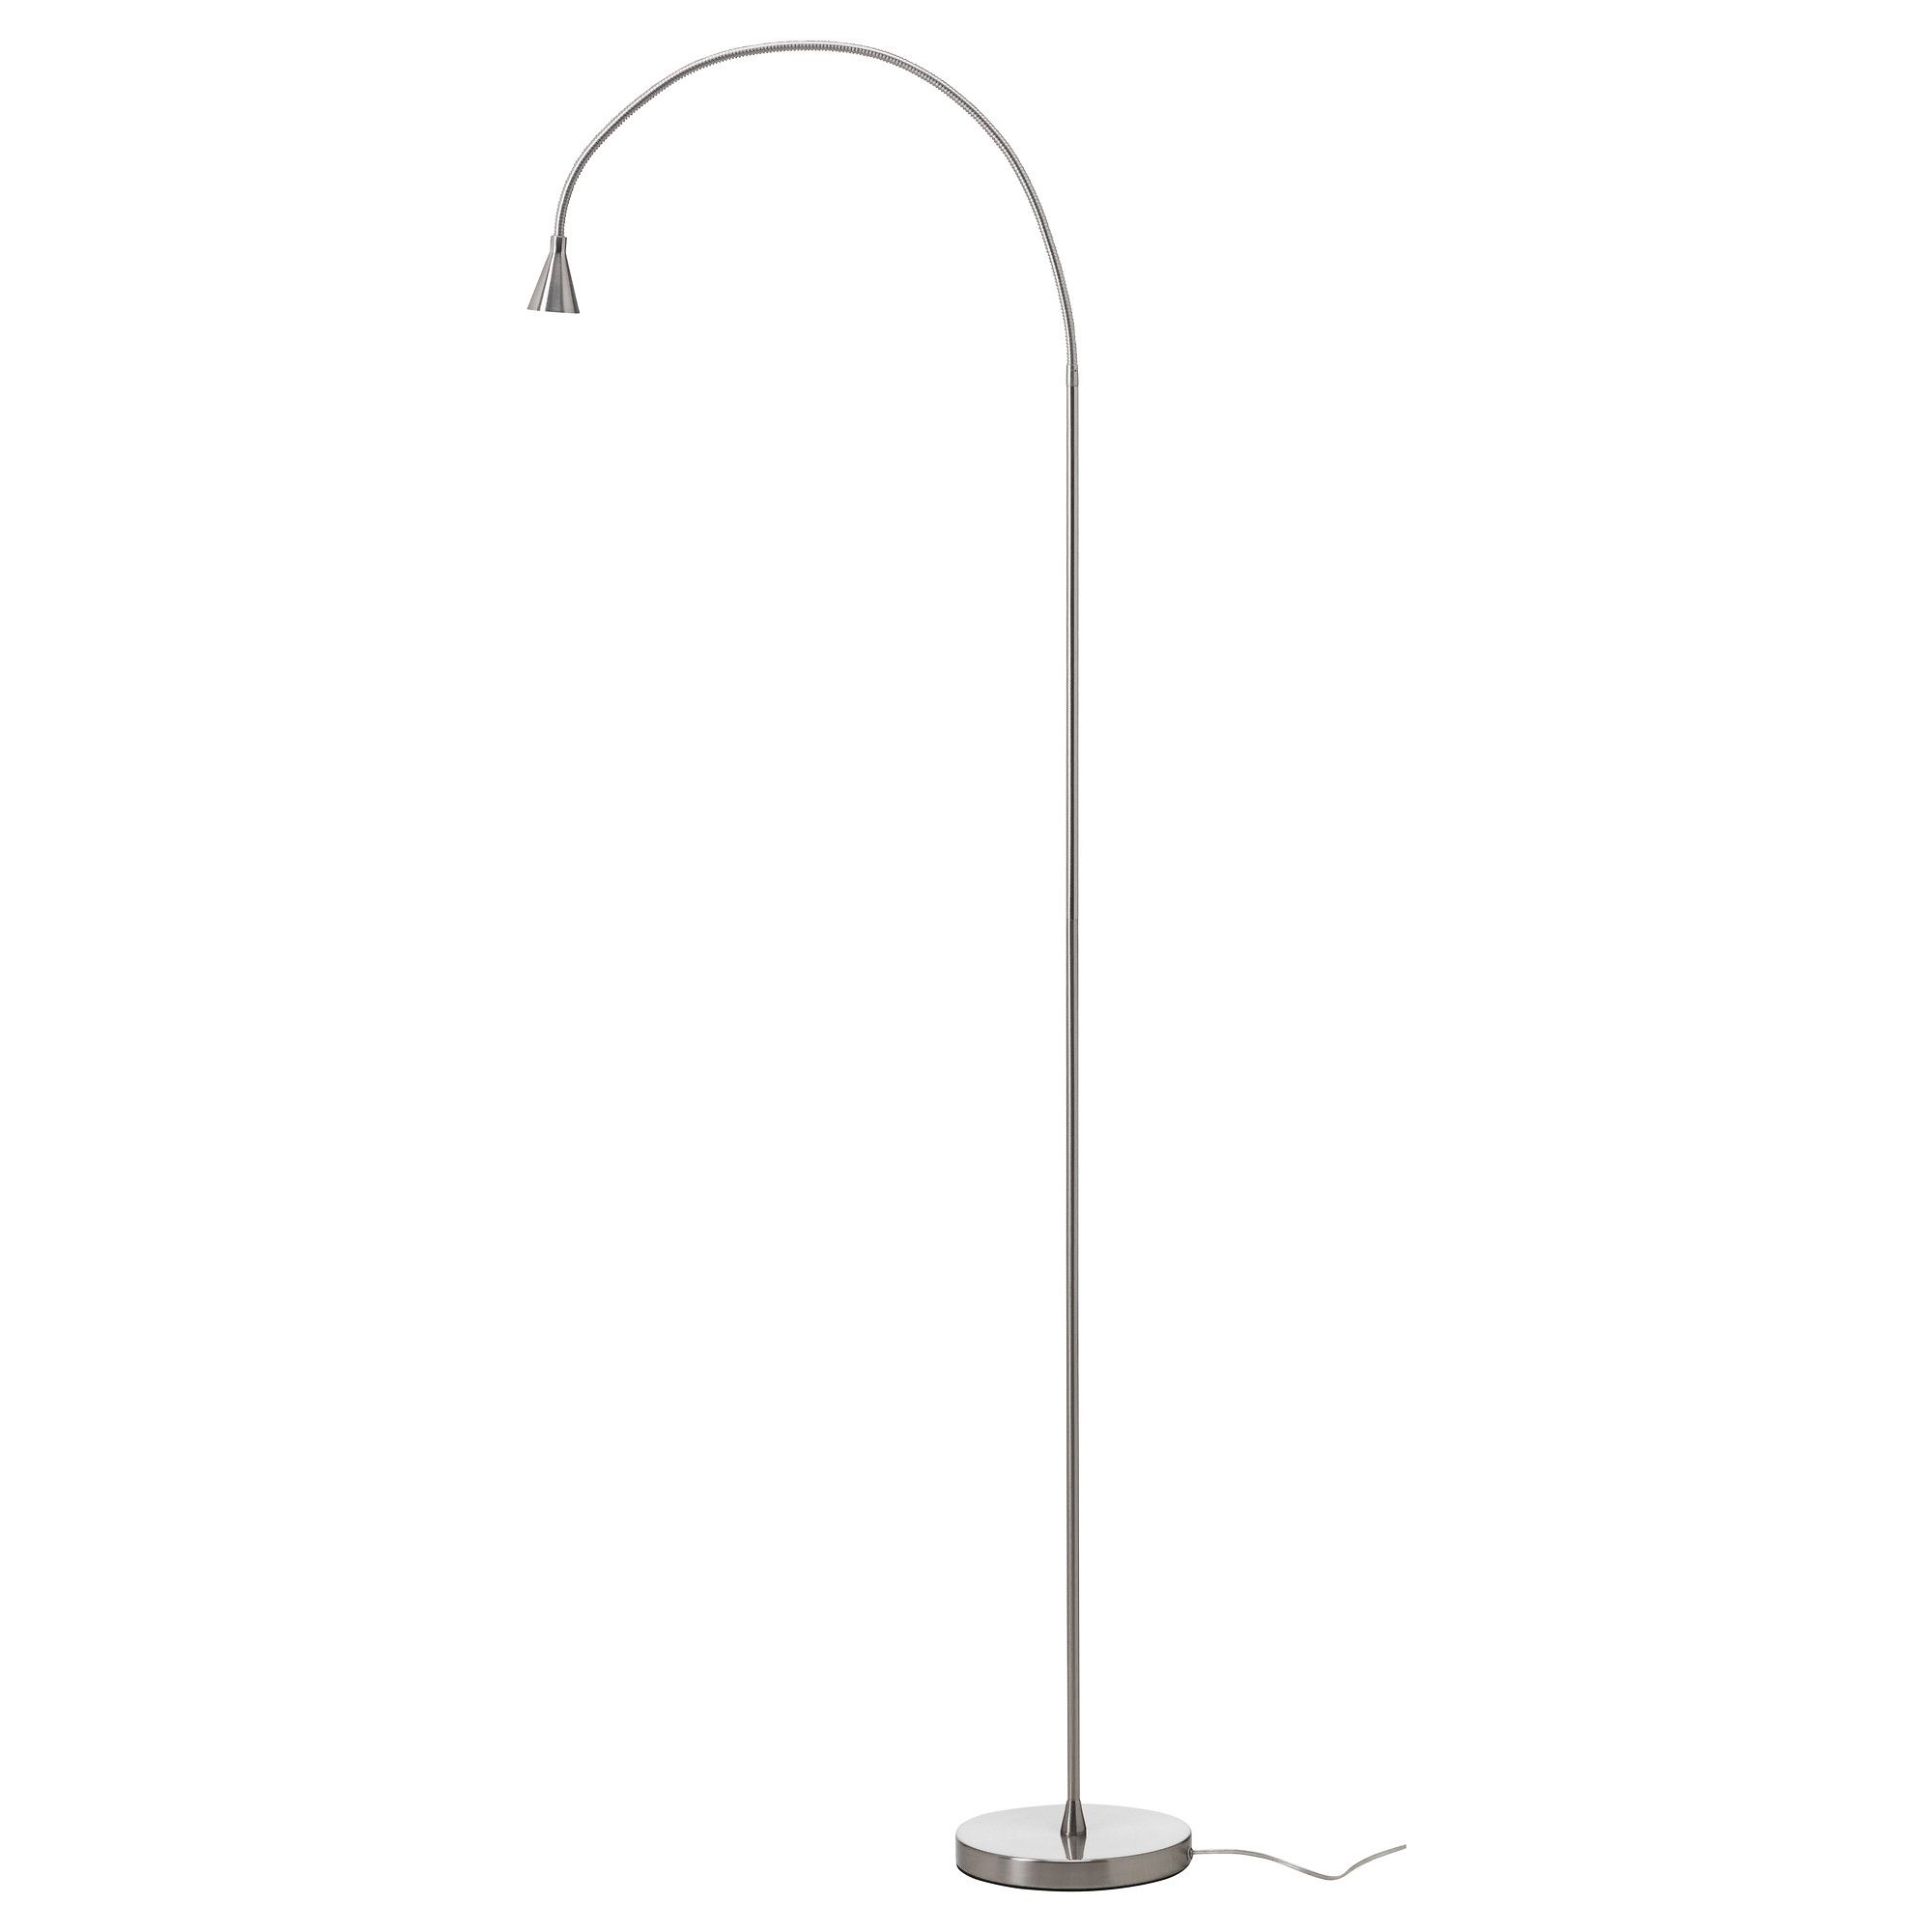 Gooseneck Floor Lamps Ikea Best Floor Reading Lamps Ideas On